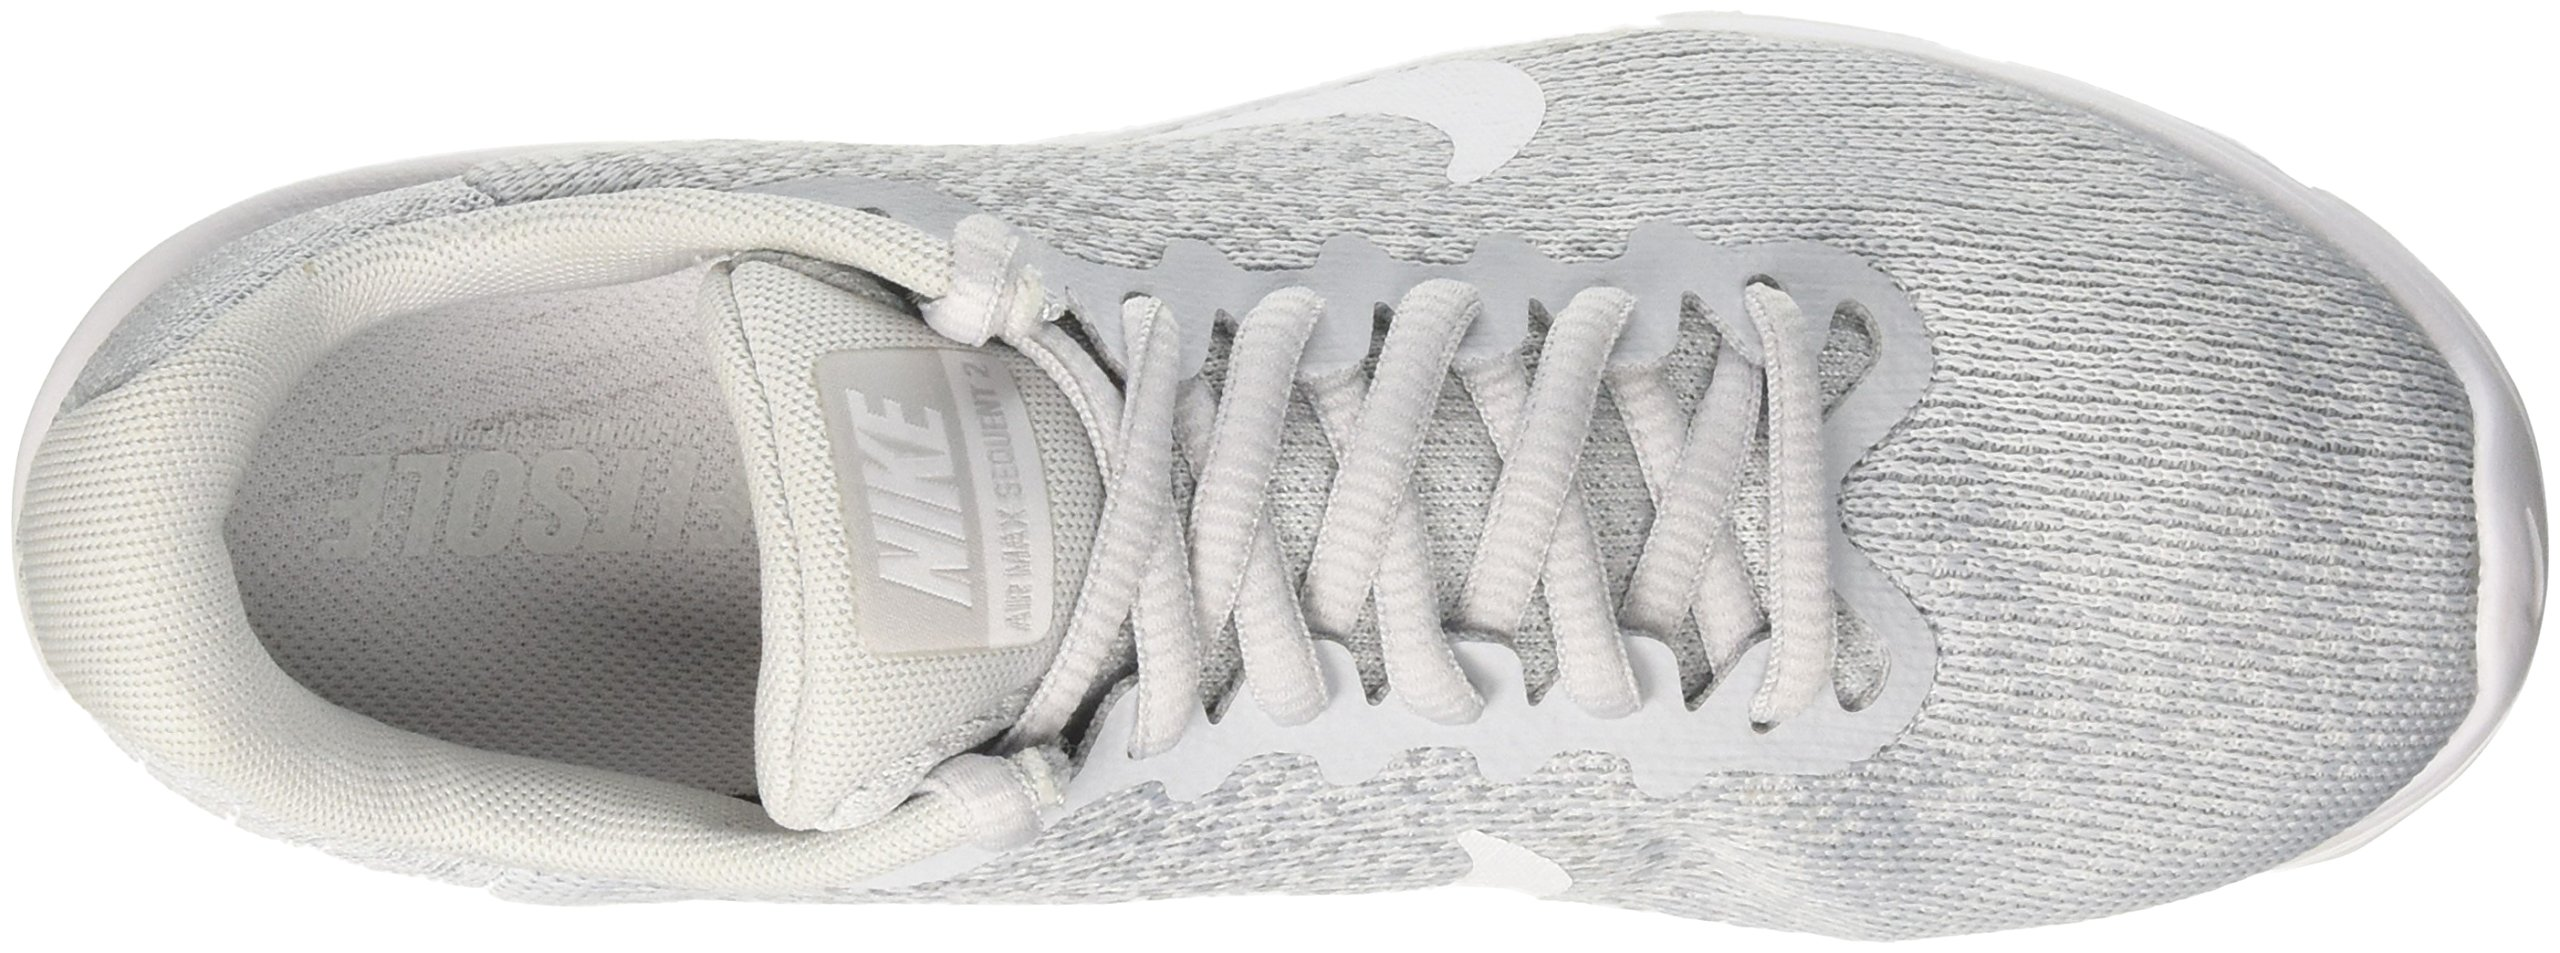 NIKE Womens Air max Sequent 2 Low Top Lace Up Running Sneaker, Silver, Size 10.0 by NIKE (Image #6)